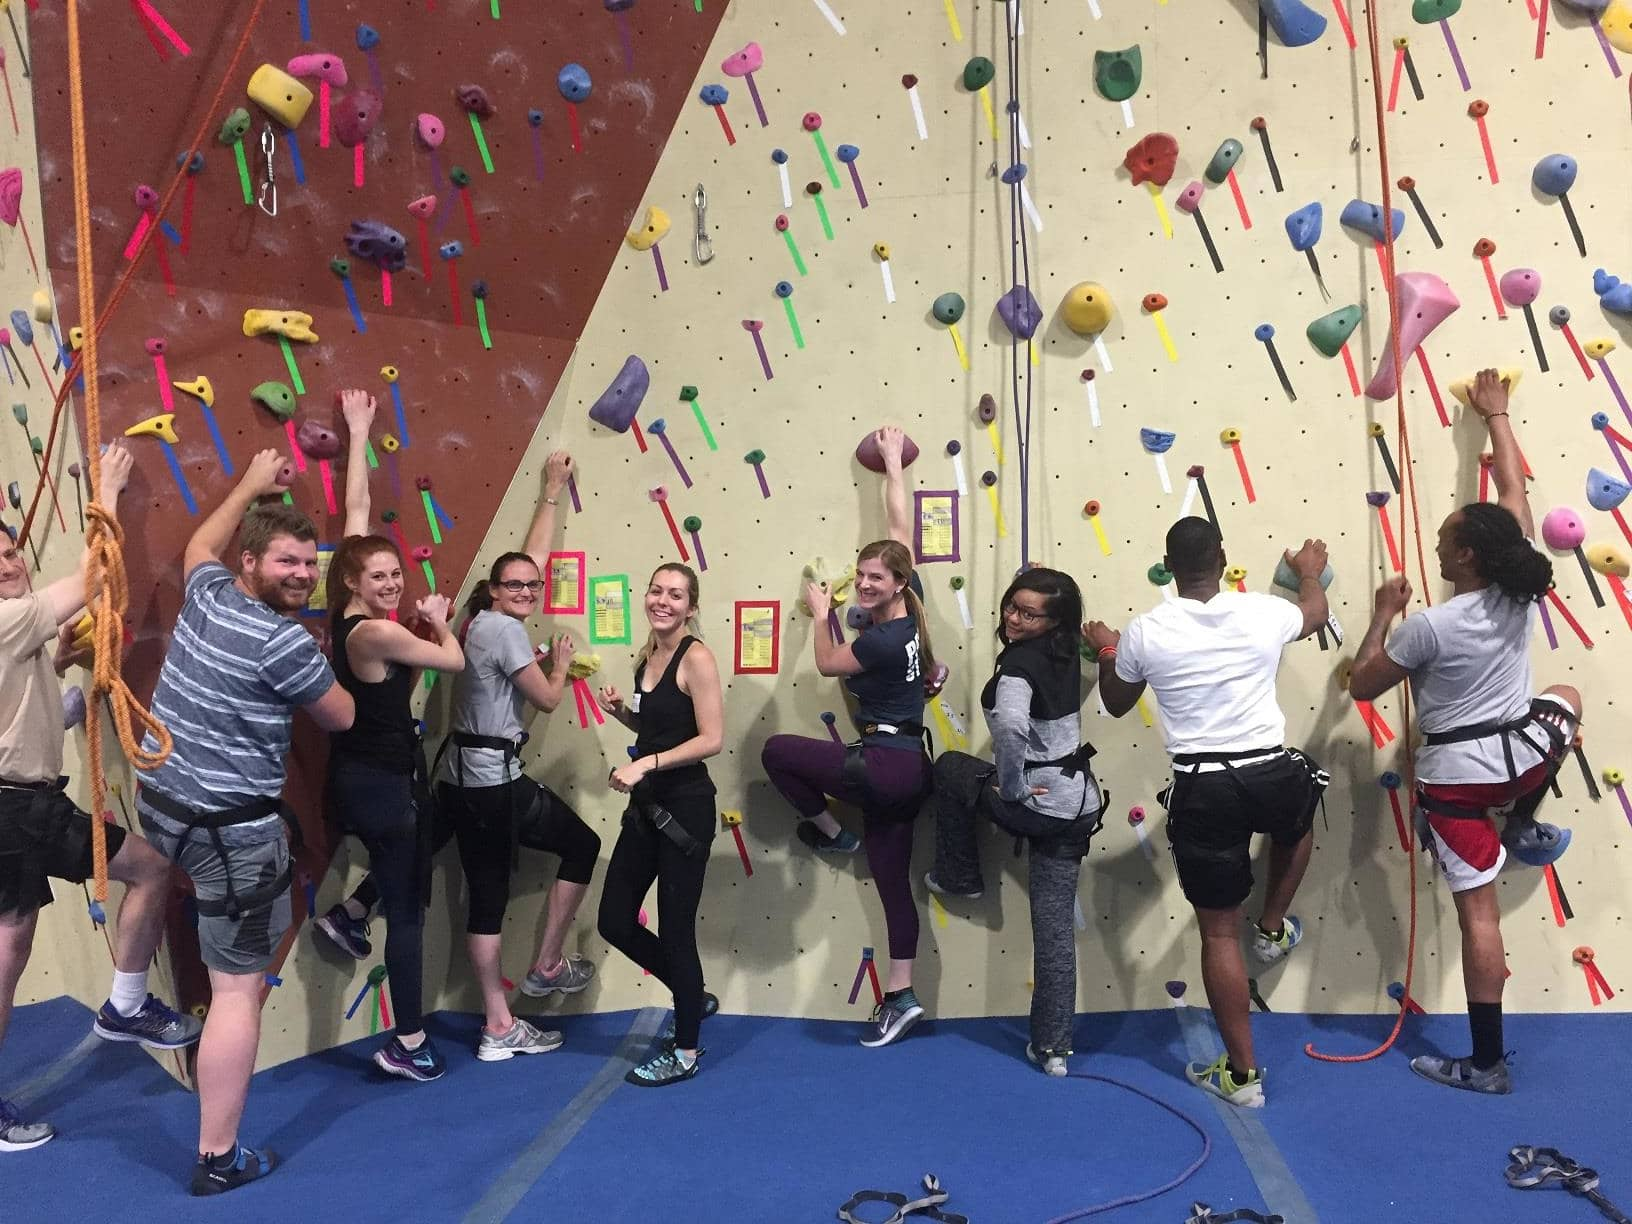 rock-climbing-group-2-w1632.jpg